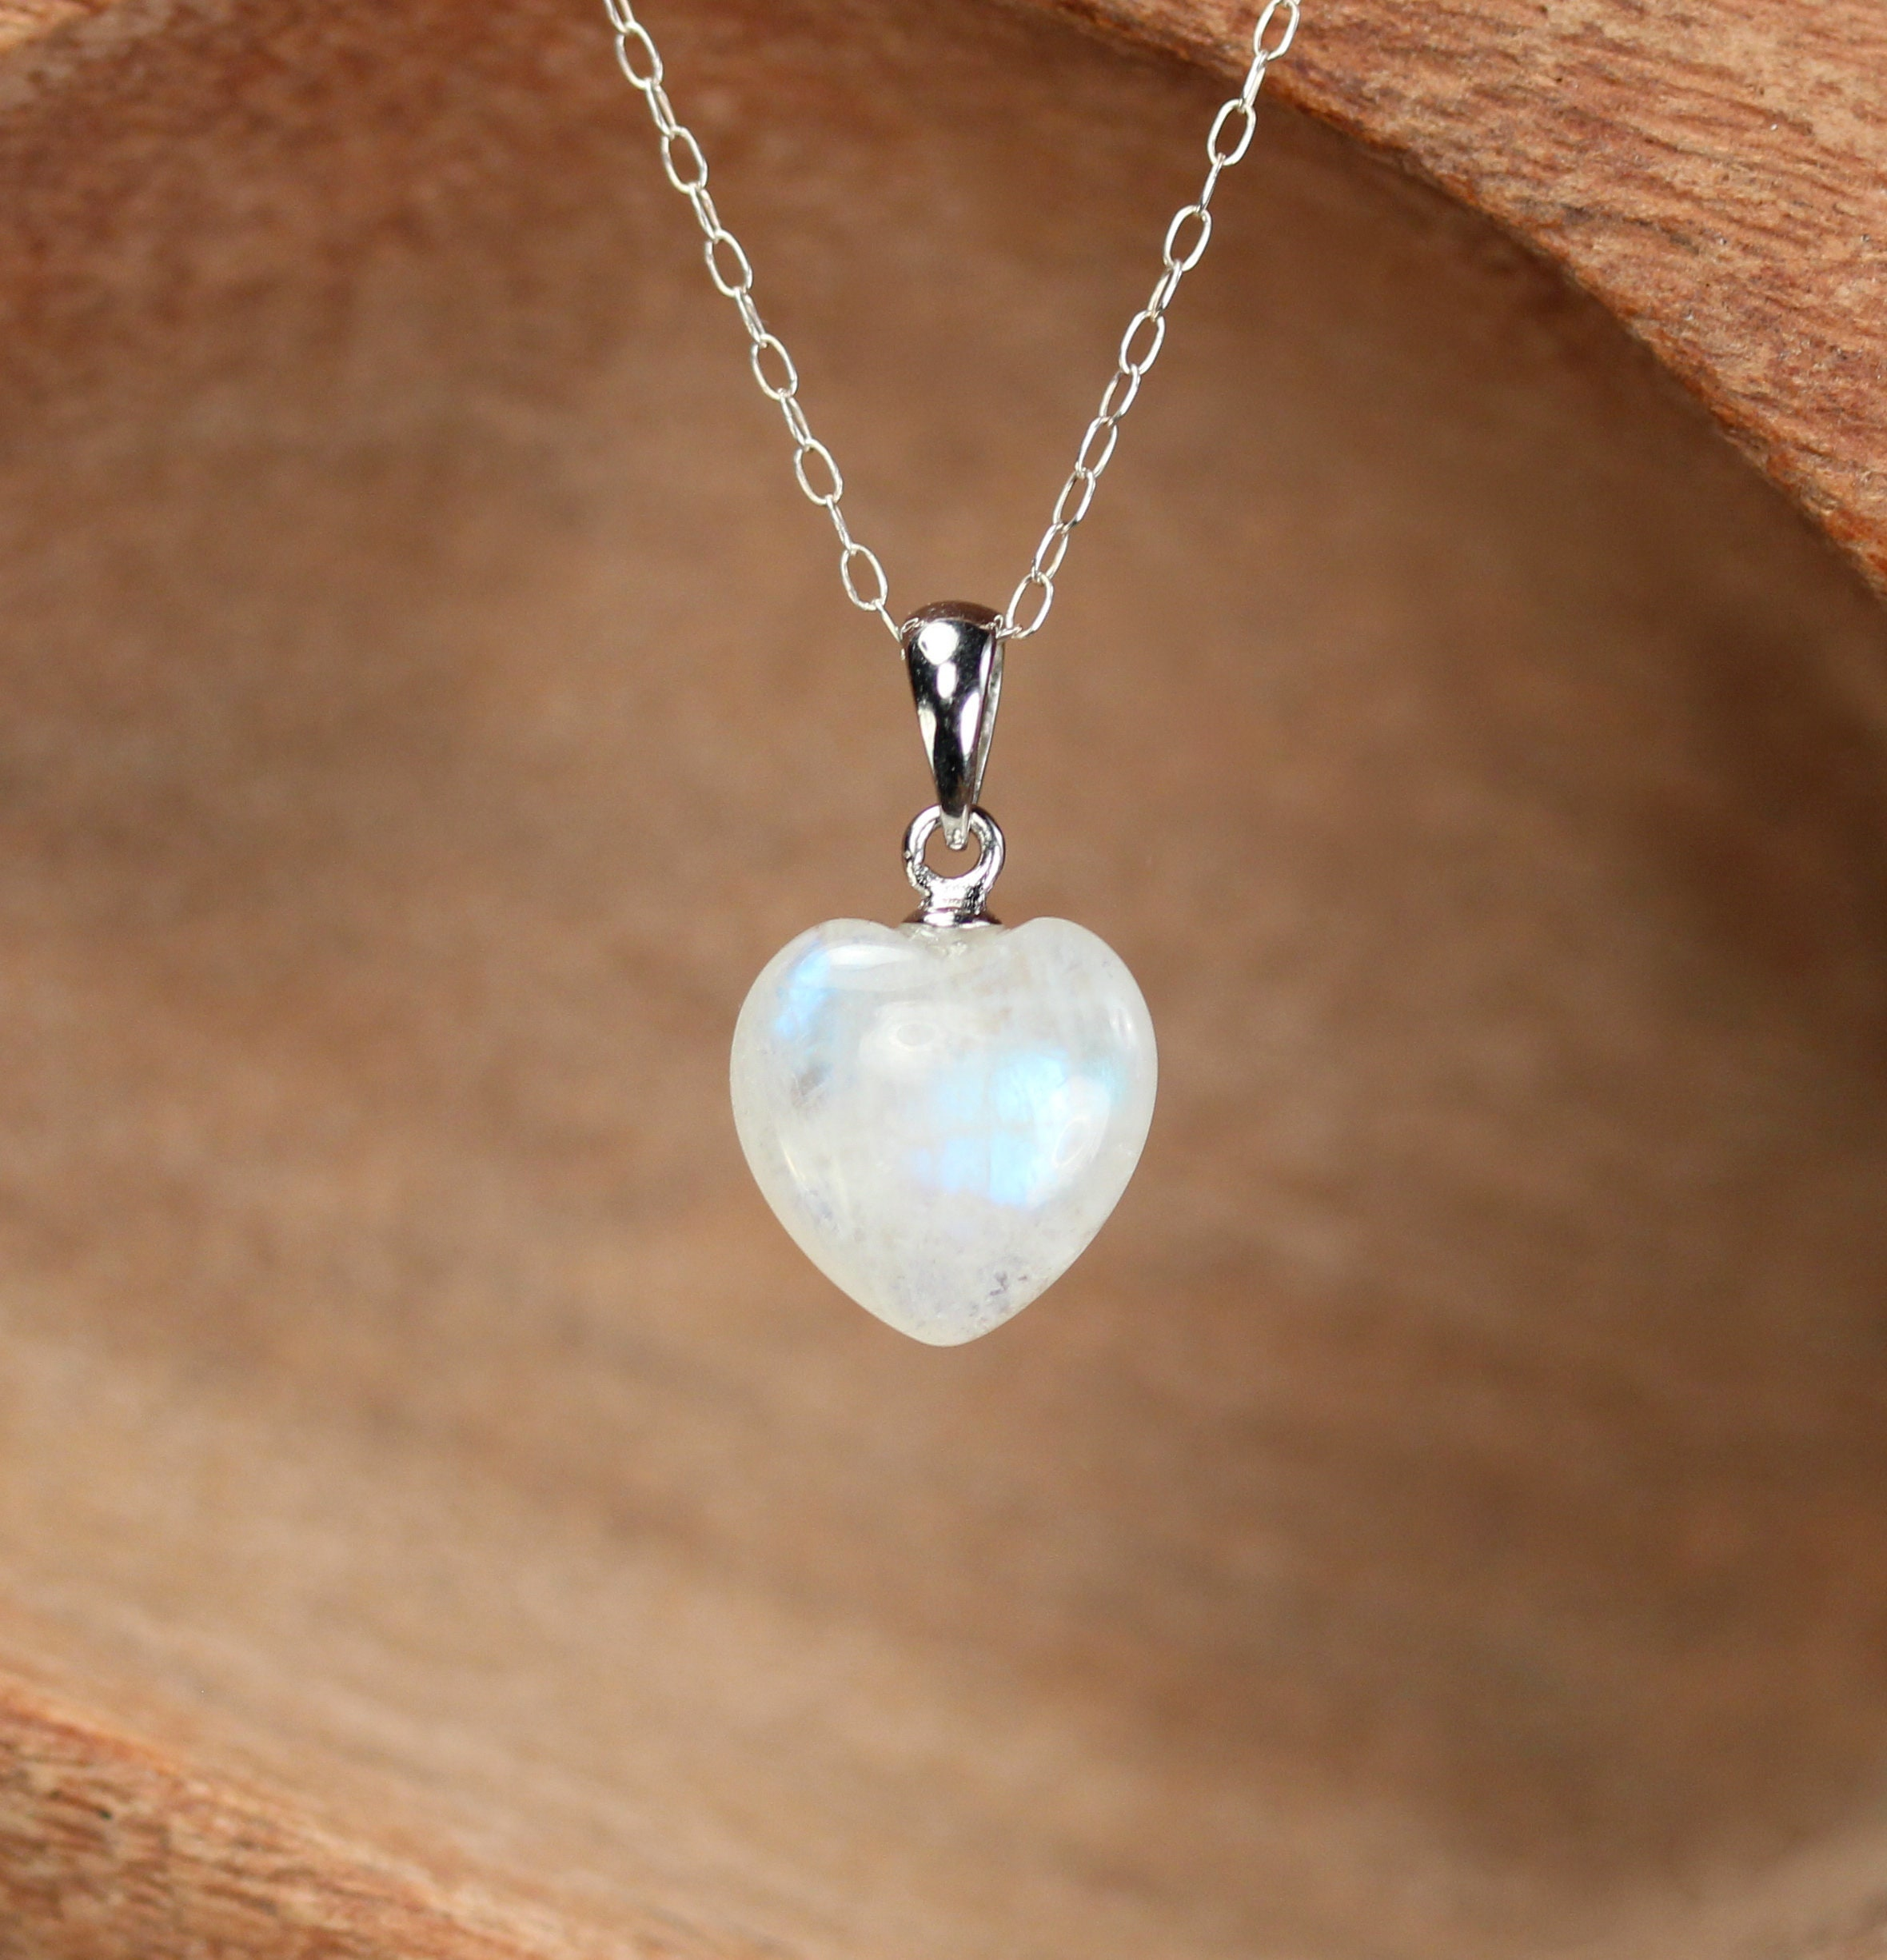 moonstone hdr rainbow garnet genuine img stone healing moon heart silver pendant products sterling